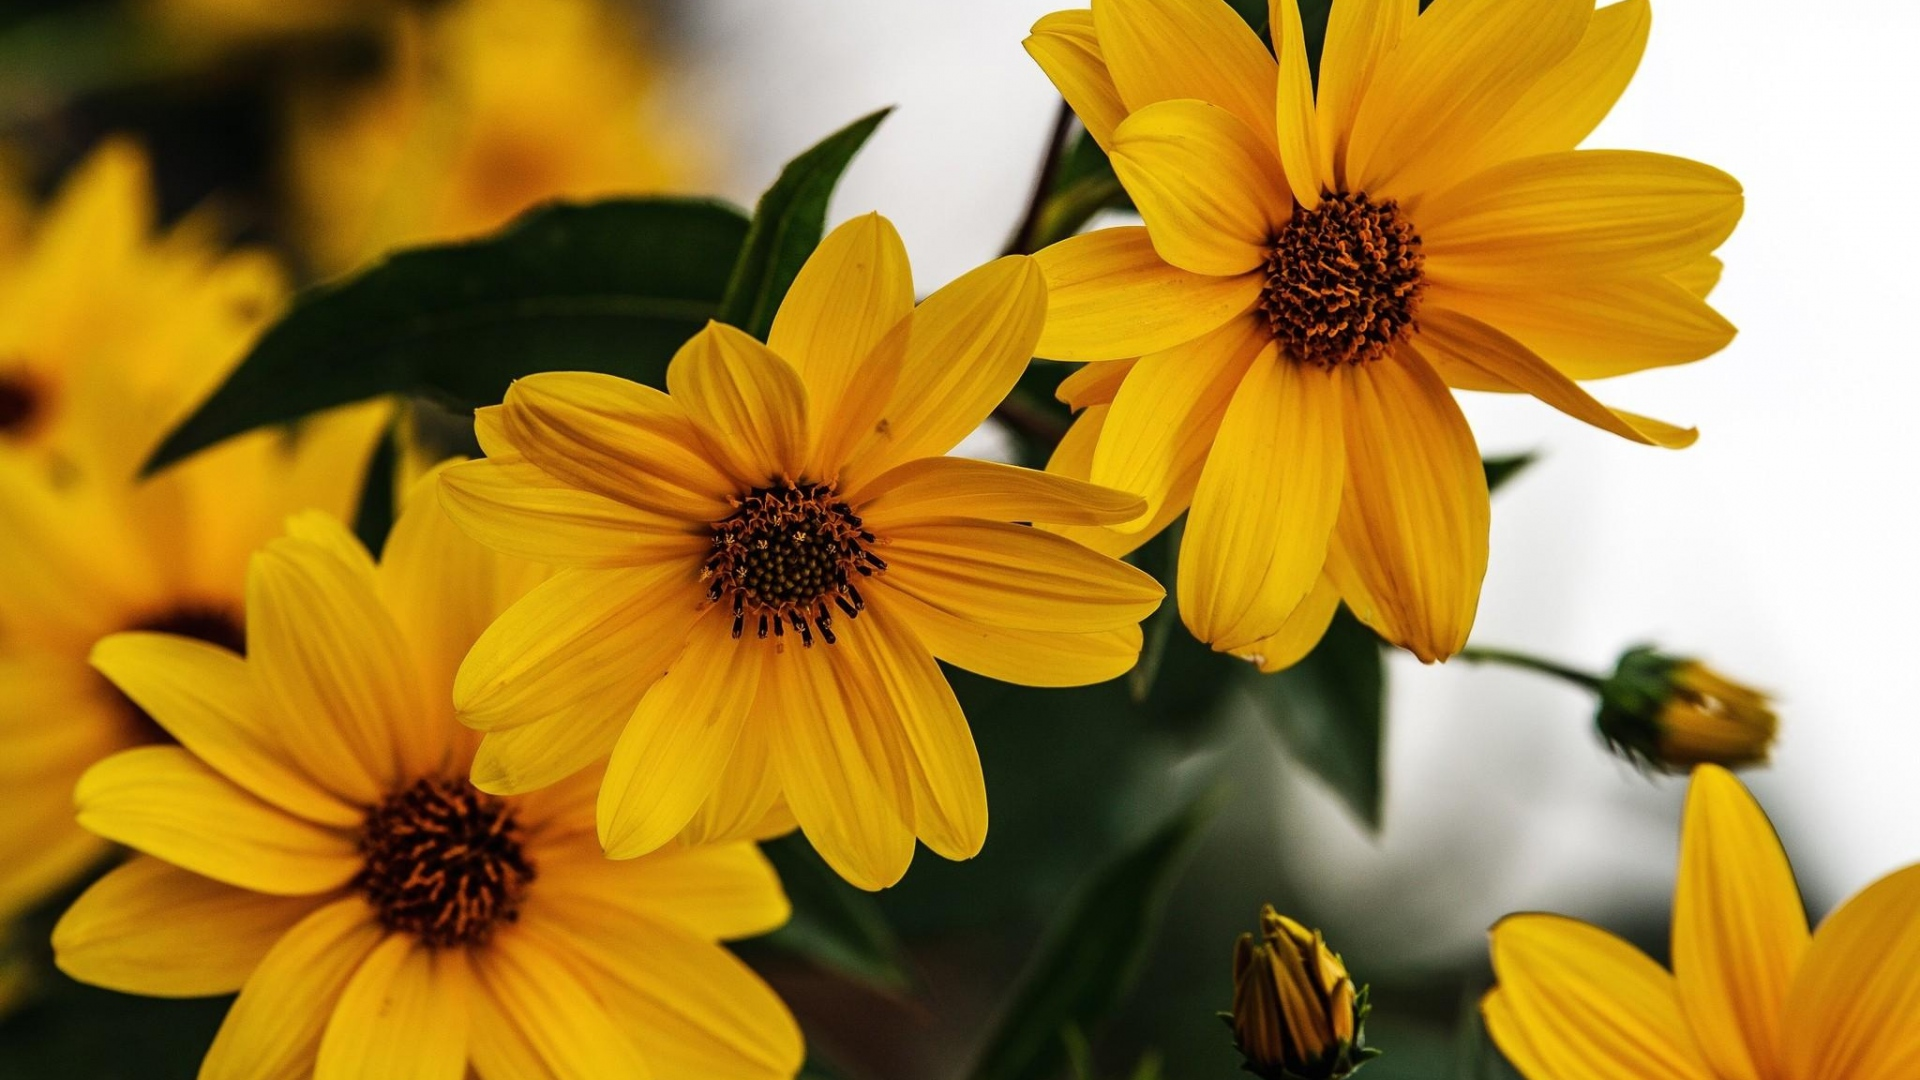 rudbeckia flowers wallpaper